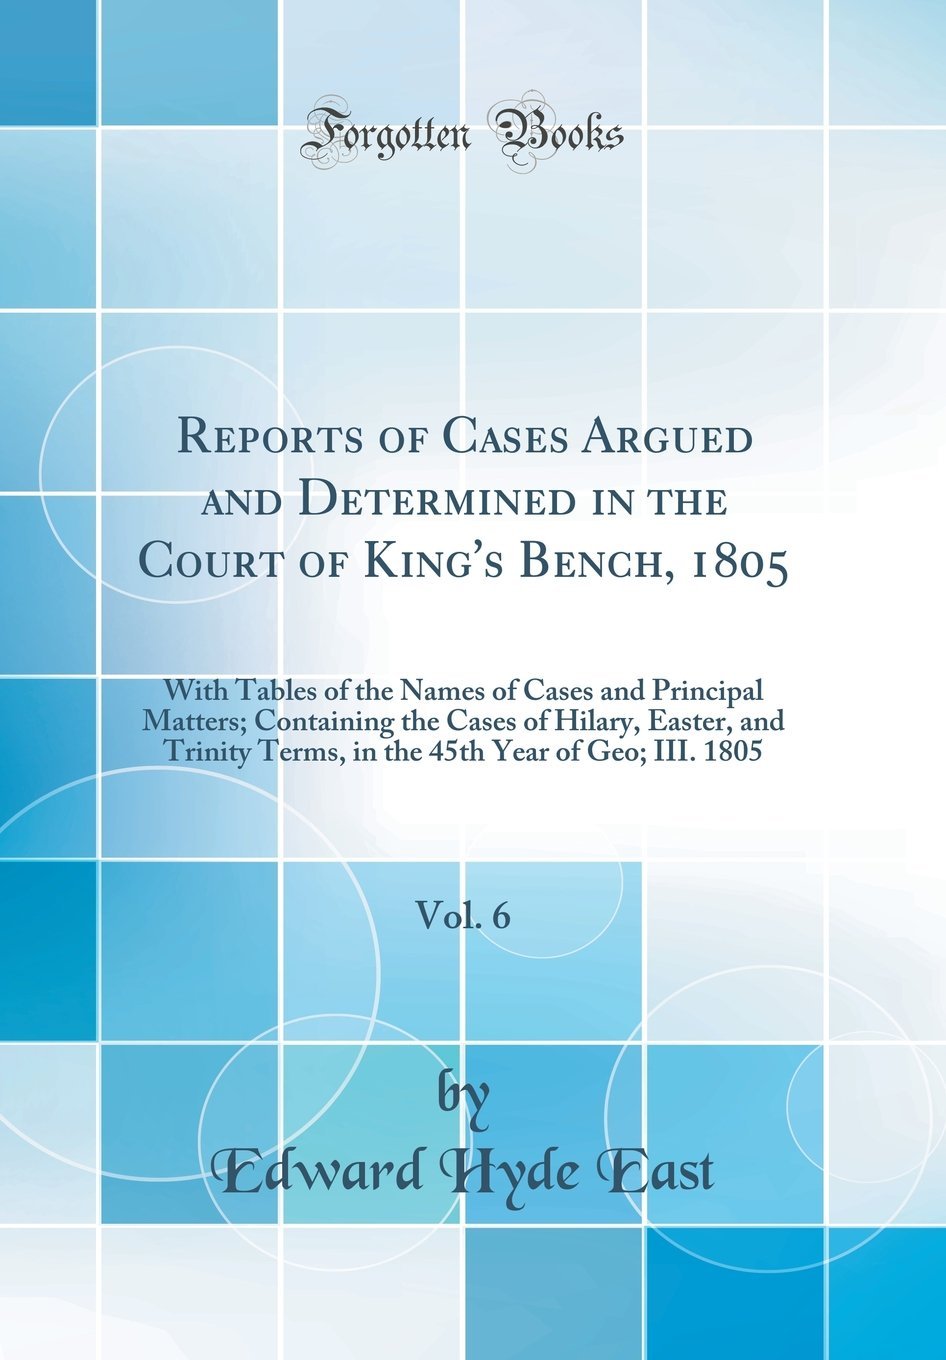 Download Reports of Cases Argued and Determined in the Court of King's Bench, 1805, Vol. 6: With Tables of the Names of Cases and Principal Matters; Containing ... 45th Year of Geo; III. 1805 (Classic Reprint) PDF